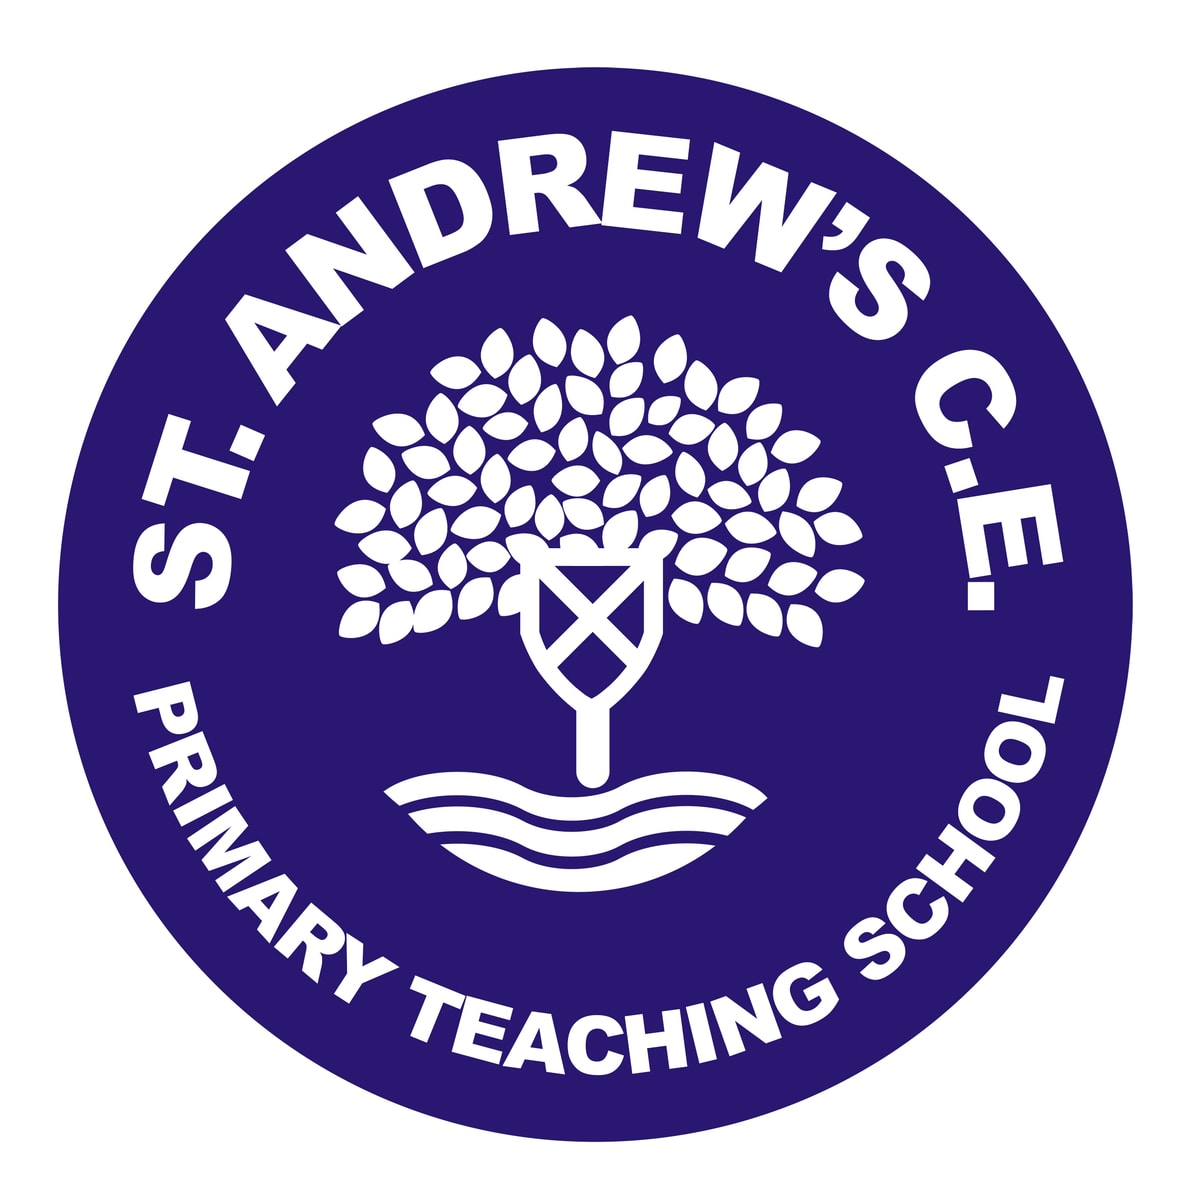 St Andrews CE Primary Teaching School